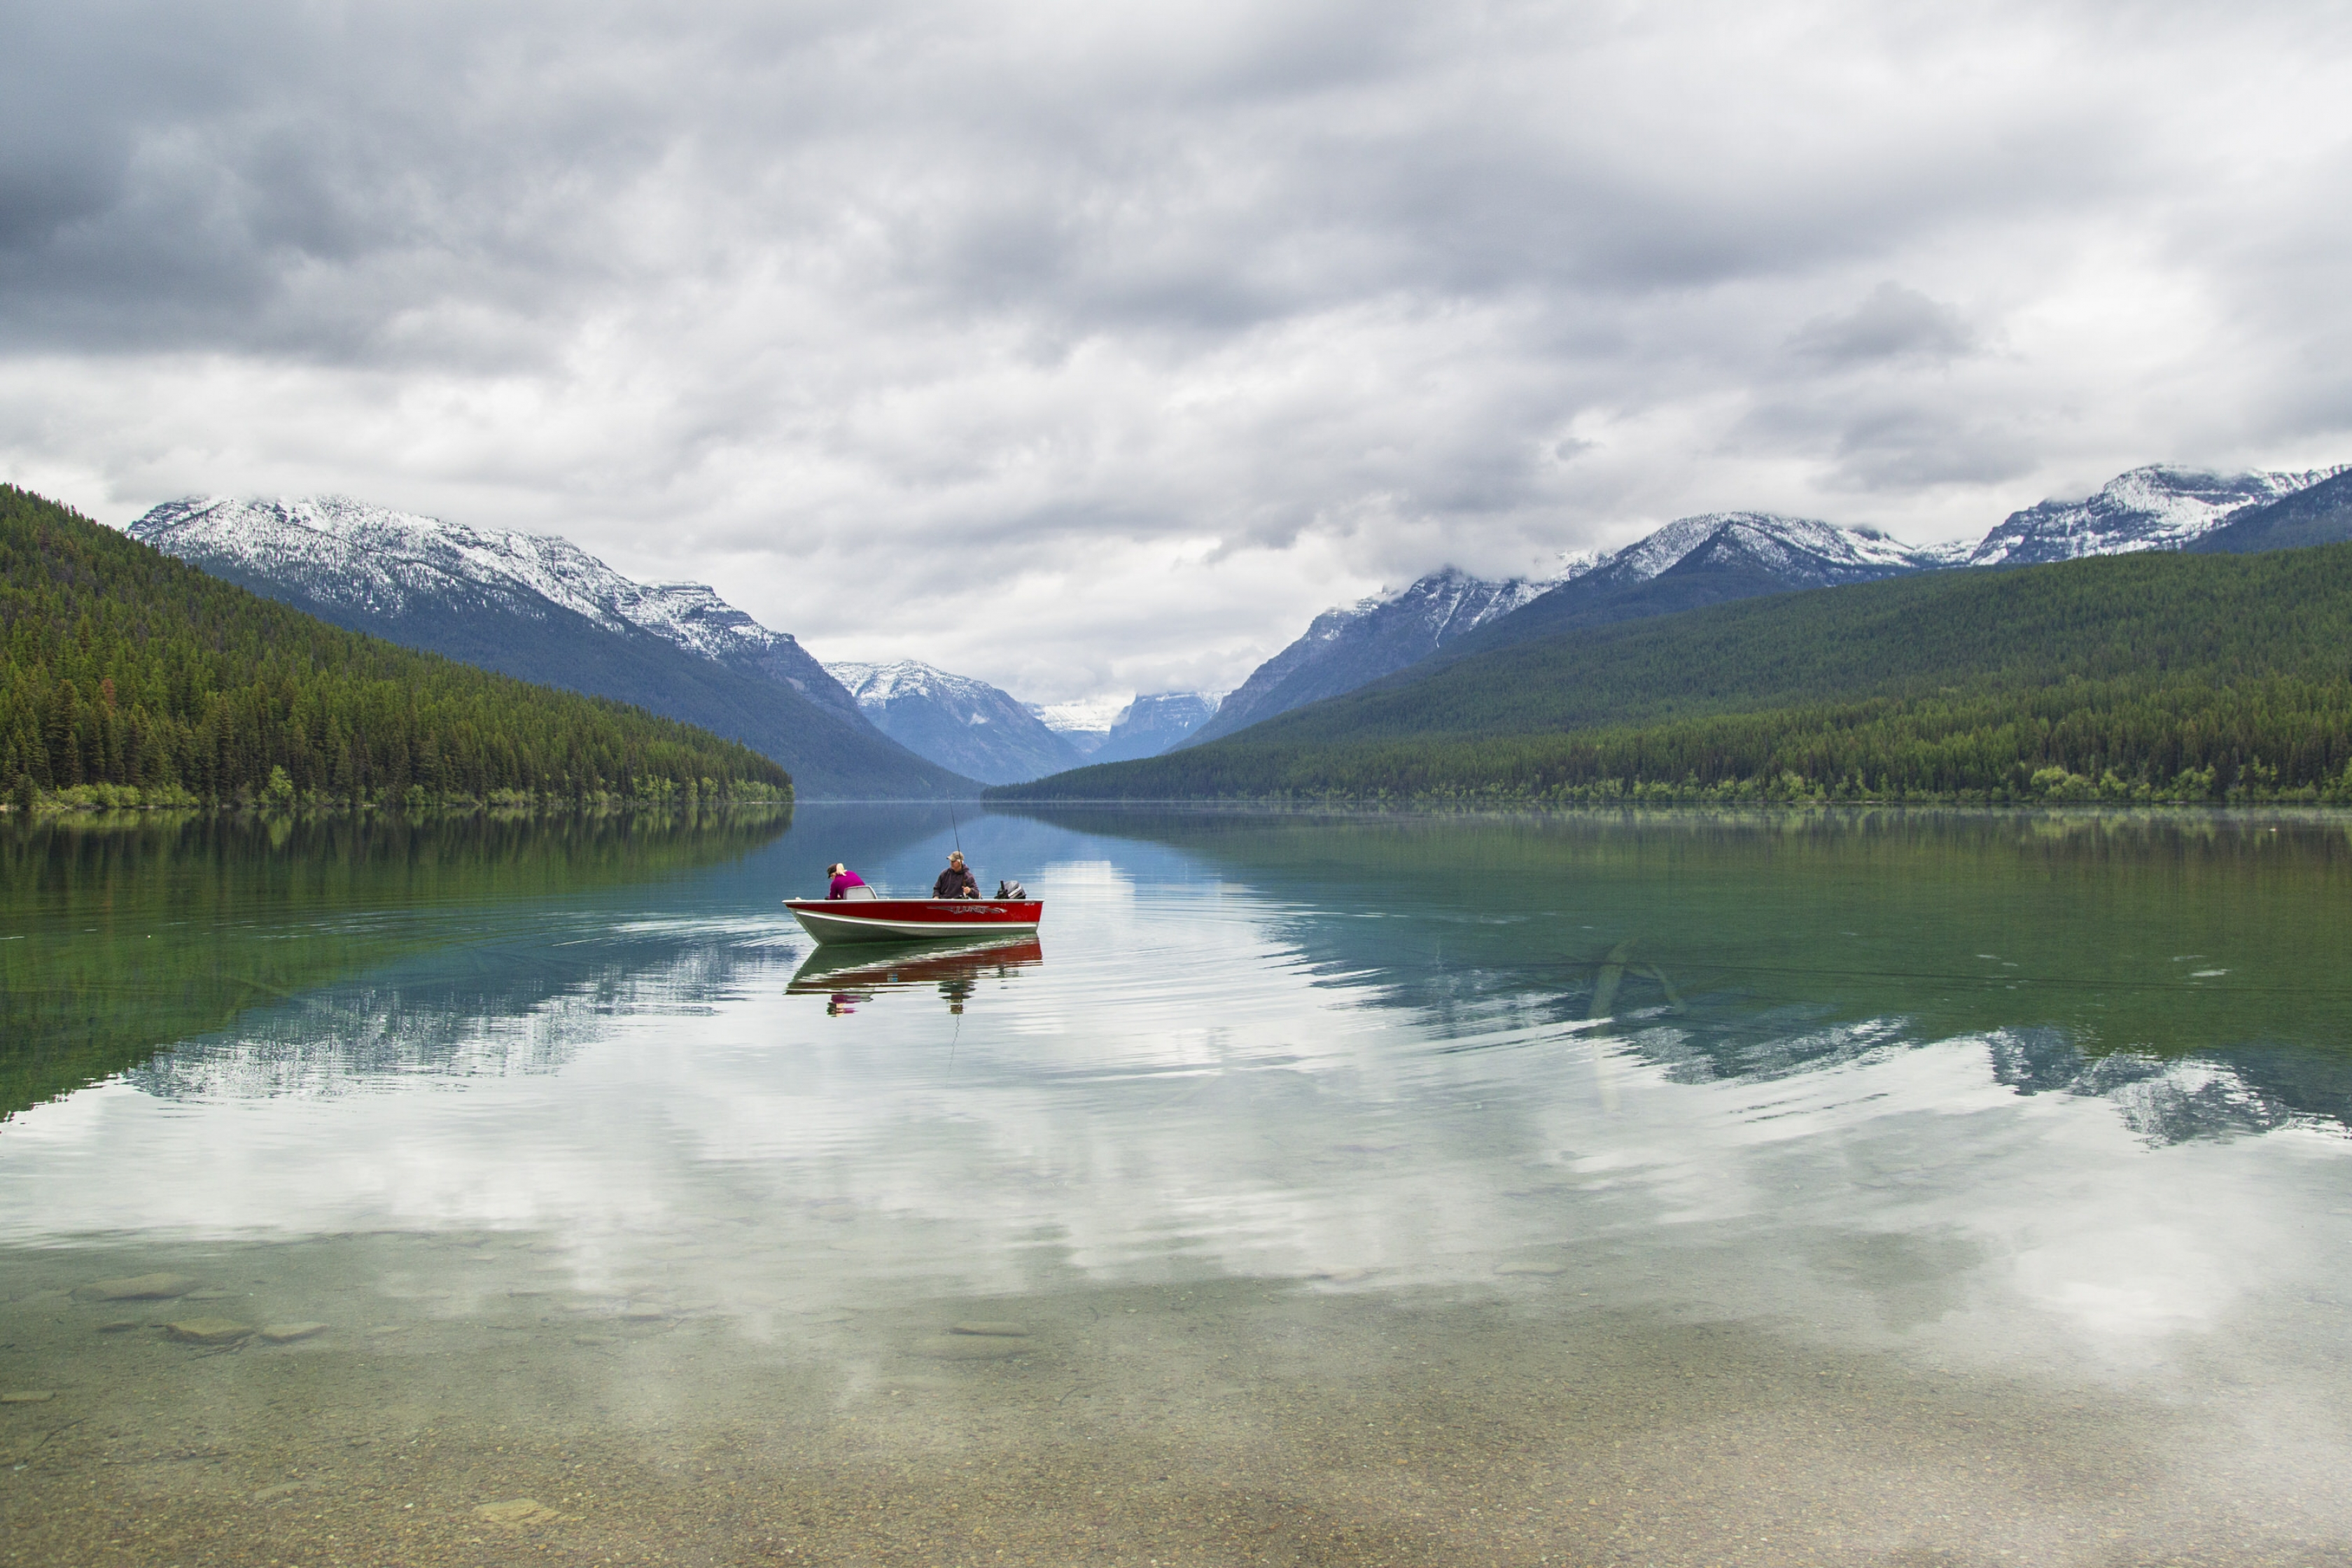 Boaters in a red boat on Bowman Lake at Glacier National Park